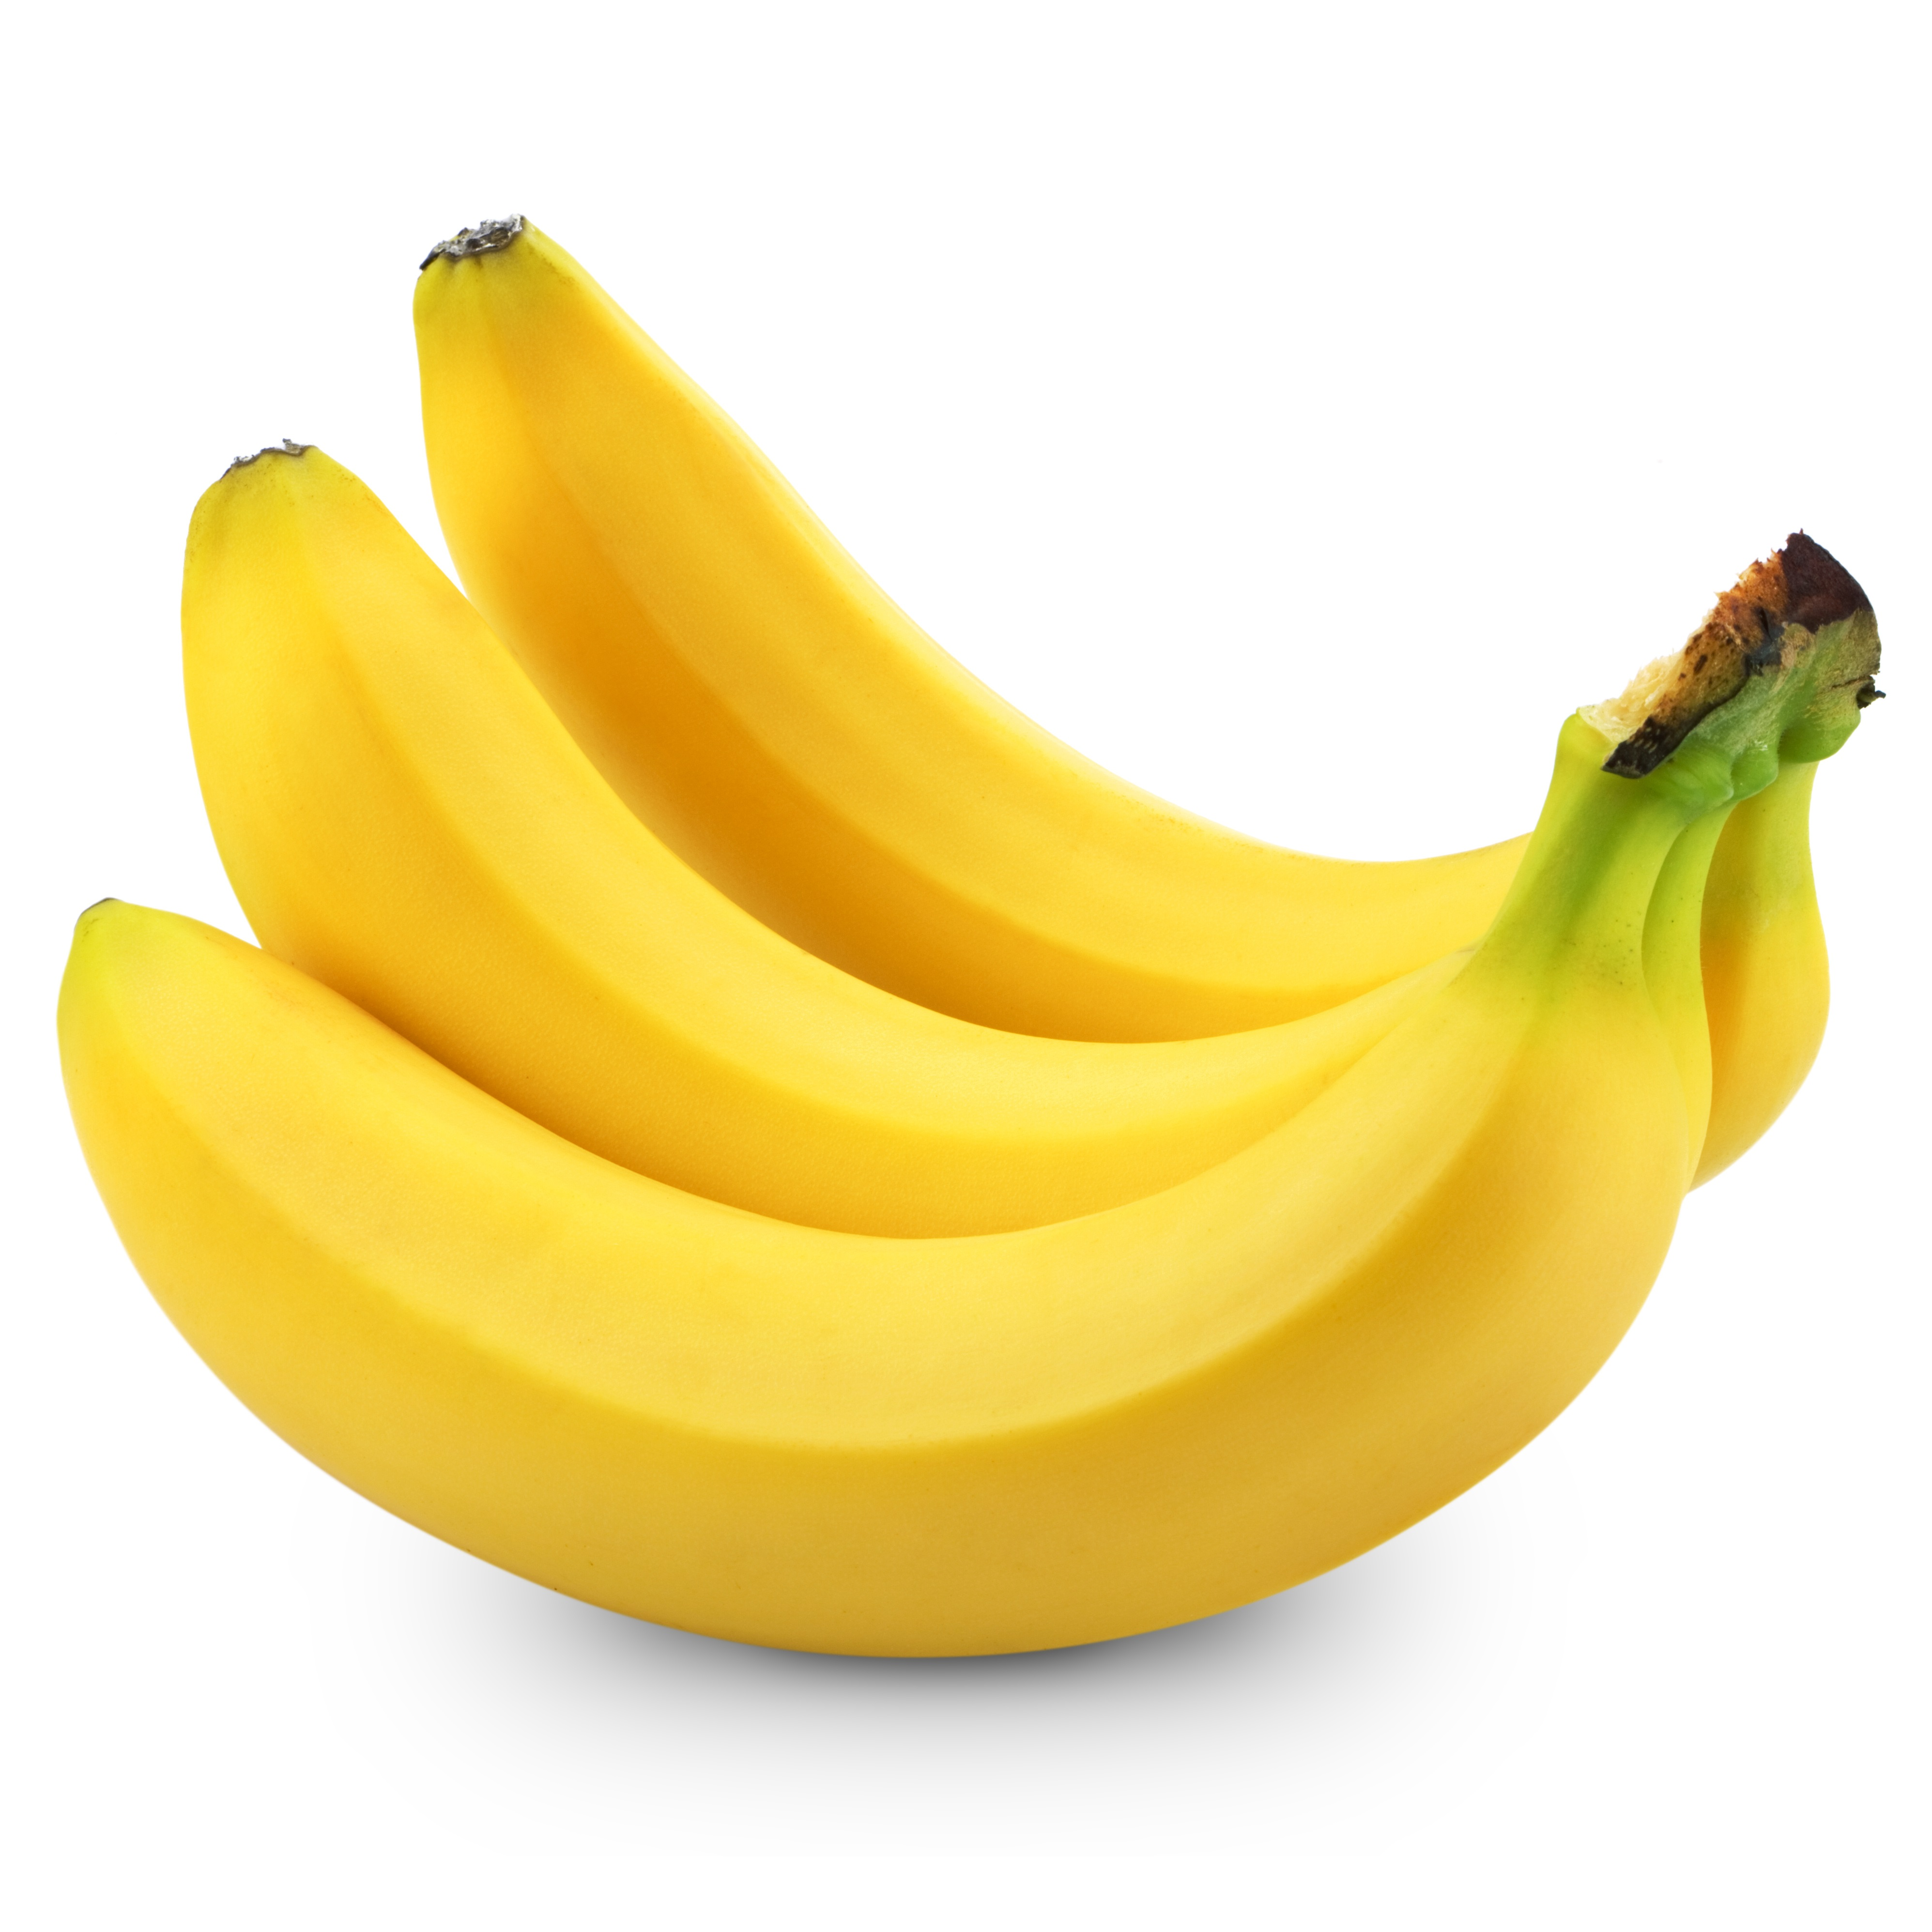 5 Healthiest And Most Delicious Ways To Use Bananas